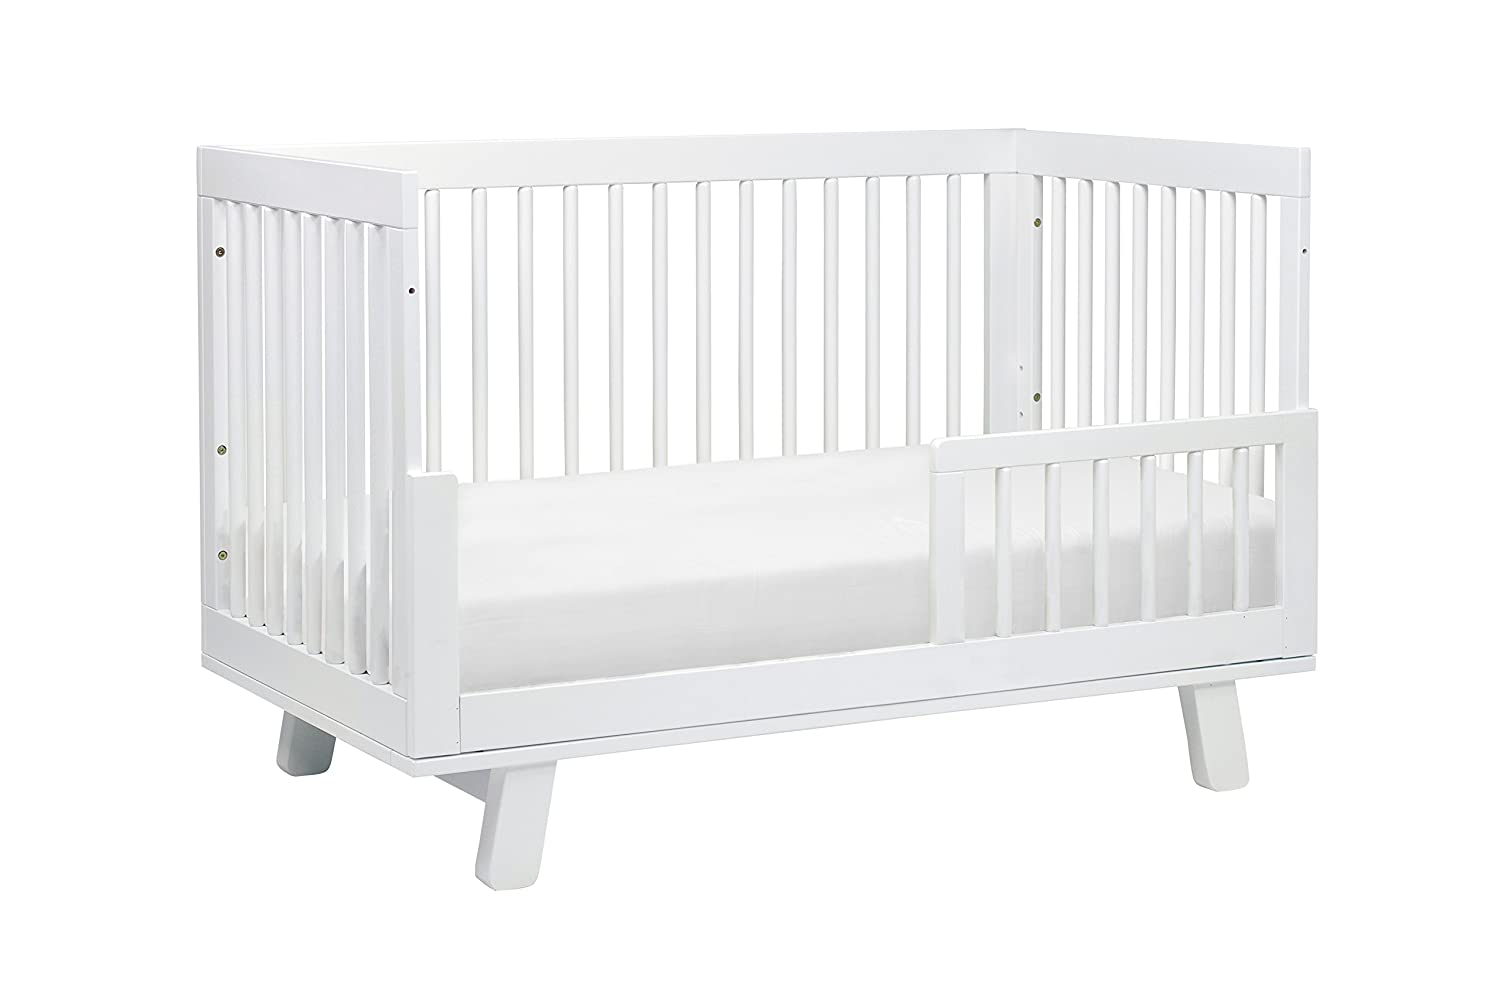 mattress the safety one foremost practicality construction metal wood crib two style bedroom frame classic white graco combines finish nursery room in part pebble ashland baby cribs furniture three convertible